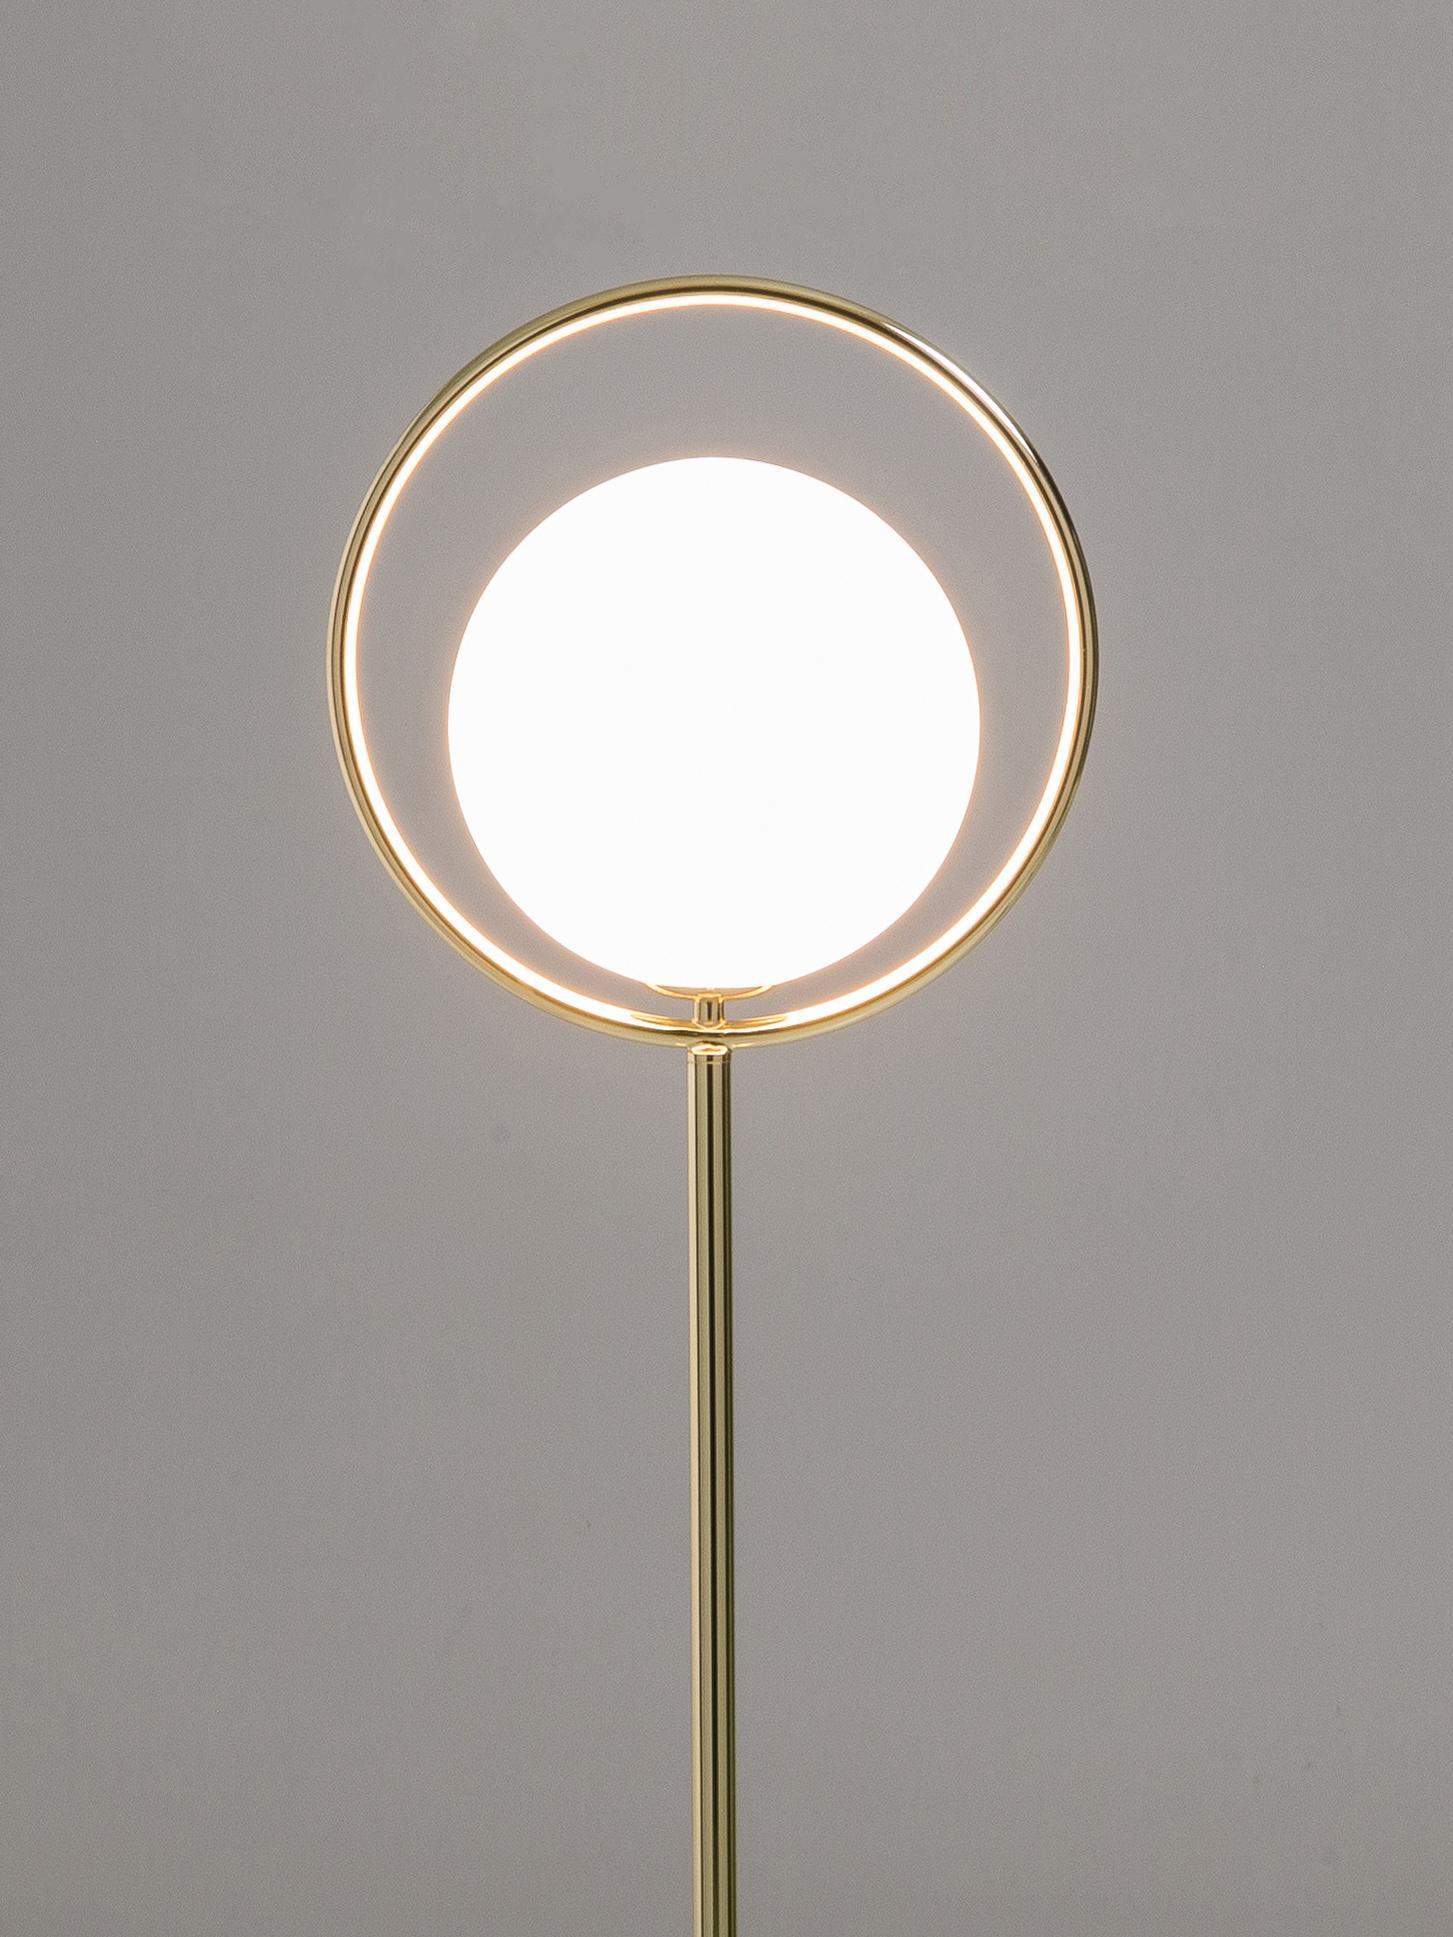 Stehlampe Messing Glas